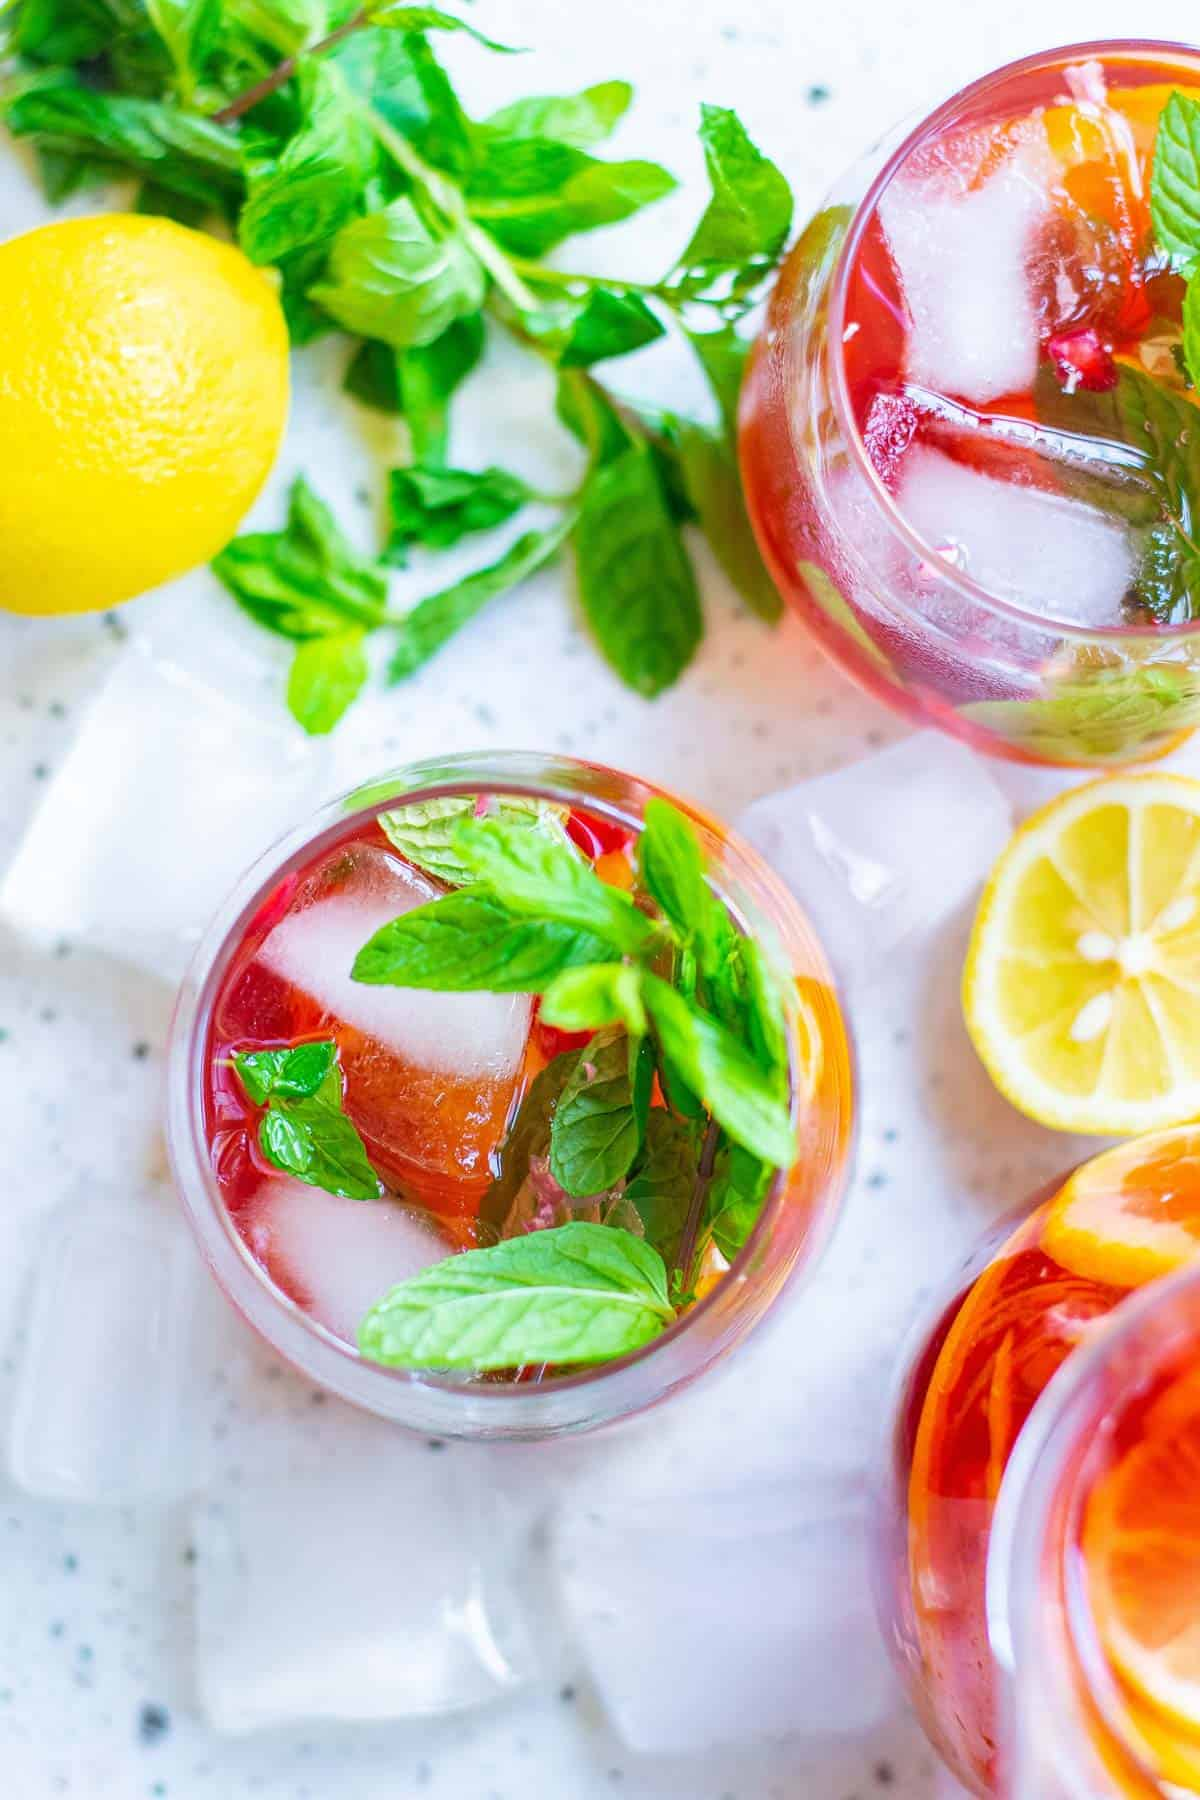 Overhead view of a glass of bright red punch with mint leaves.